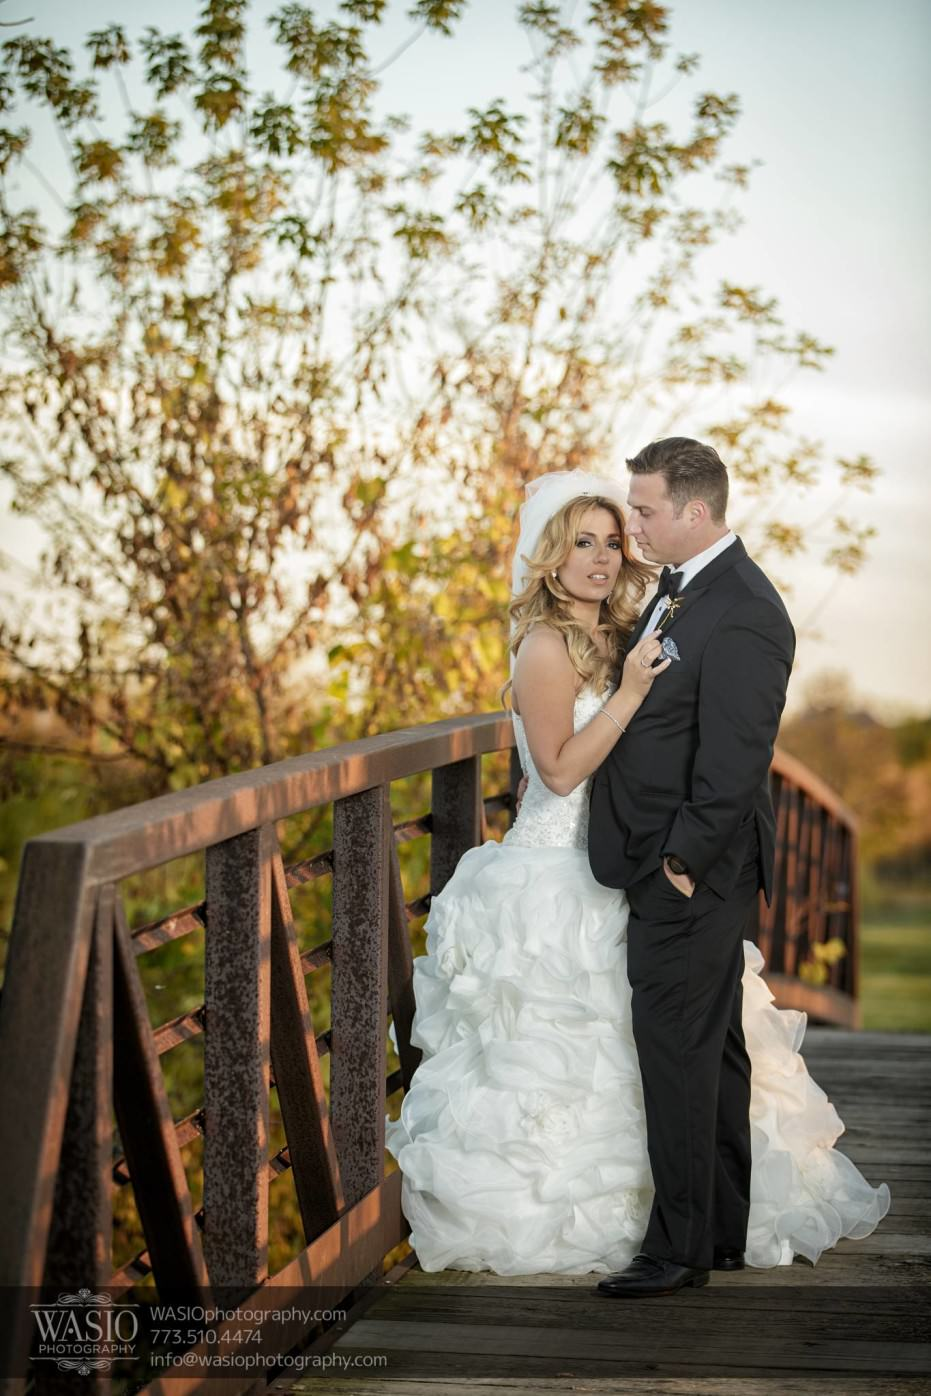 Country-club-wedding-romantic-outdoor-picture-115-931x1396 The Country Club Wedding - Nicole + Dean